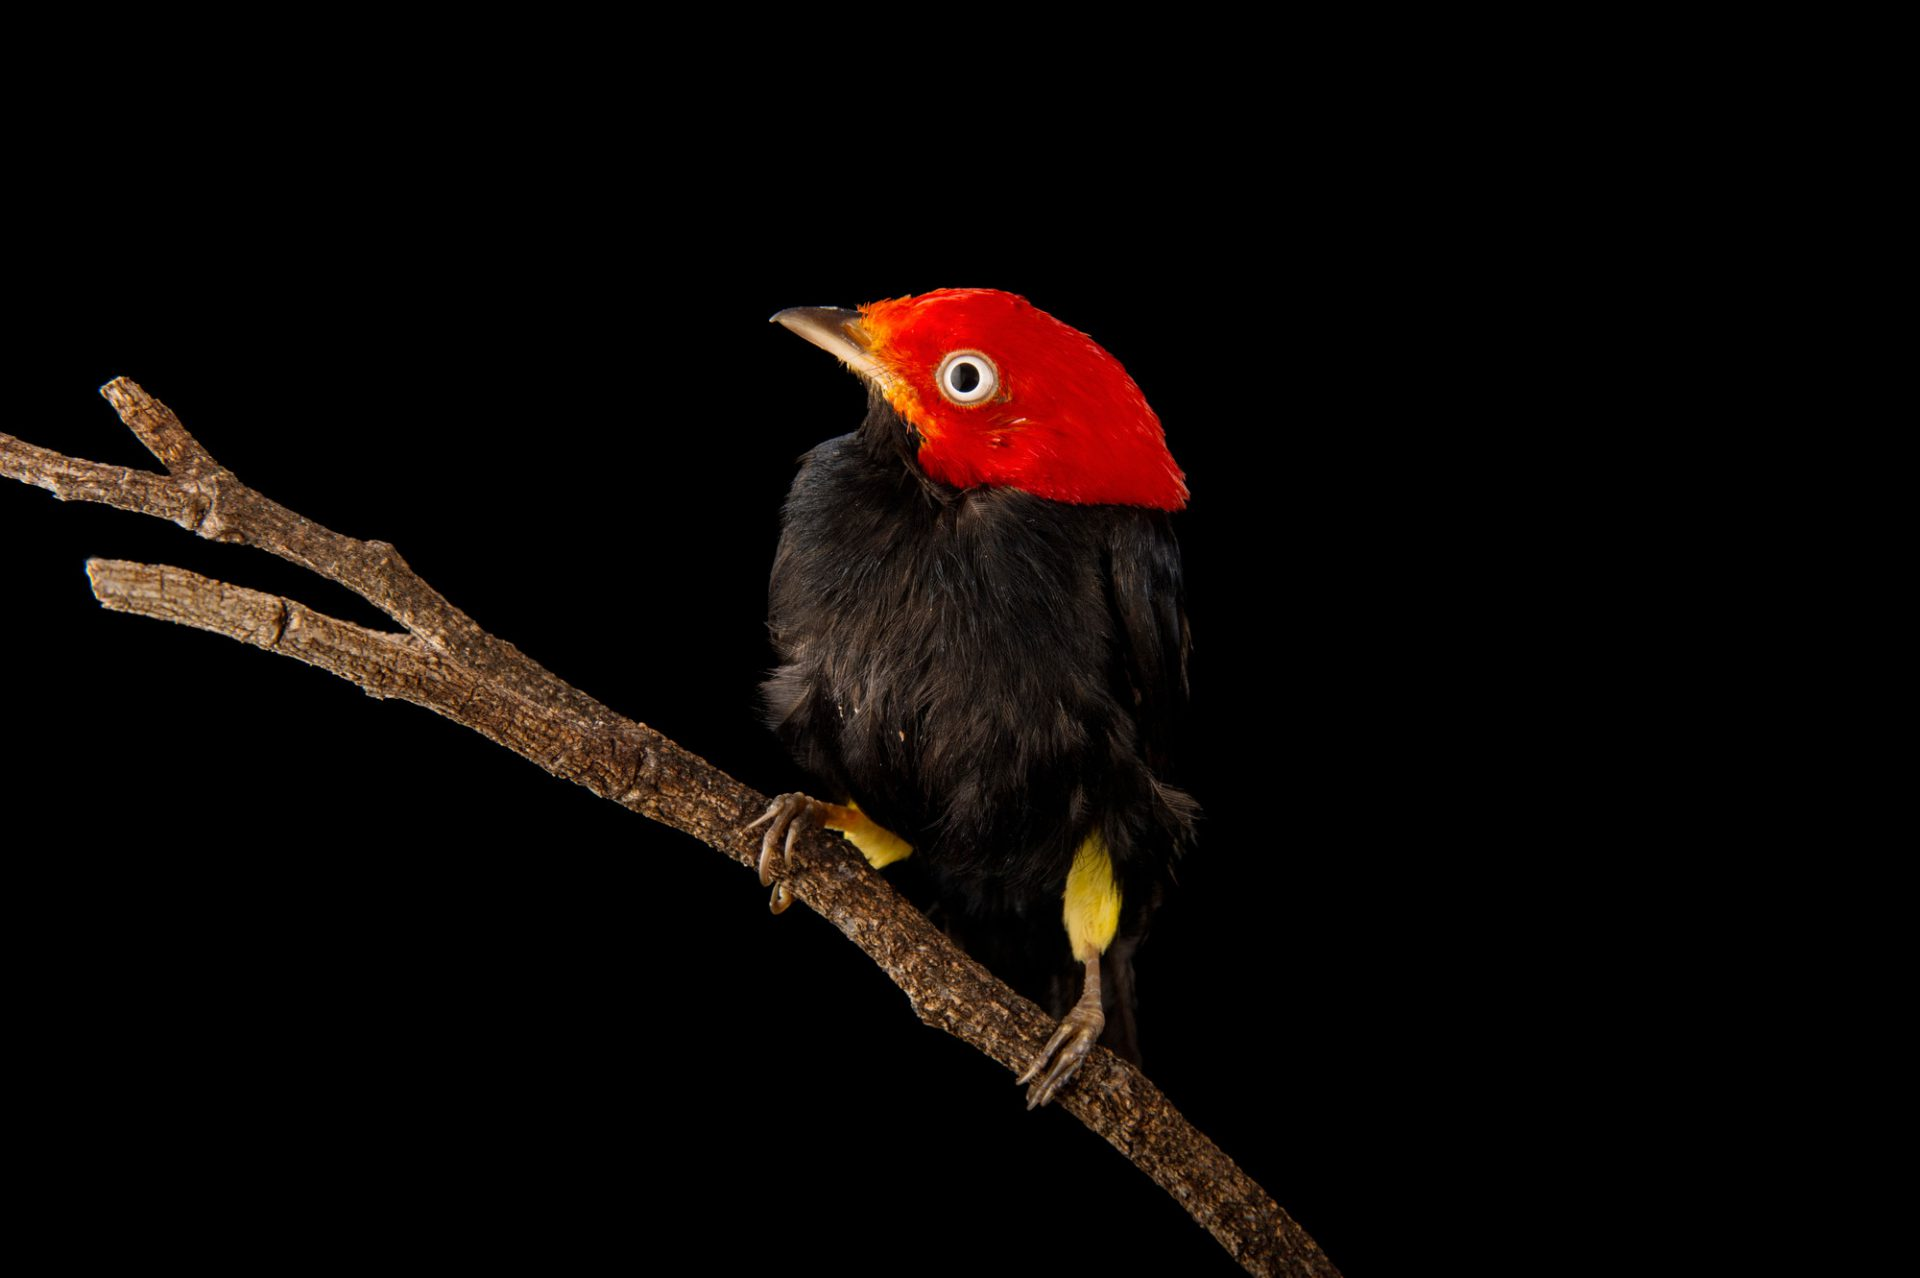 Picture of a red-capped manakin (Pipra mentalis) at the Dallas World Aquarium.